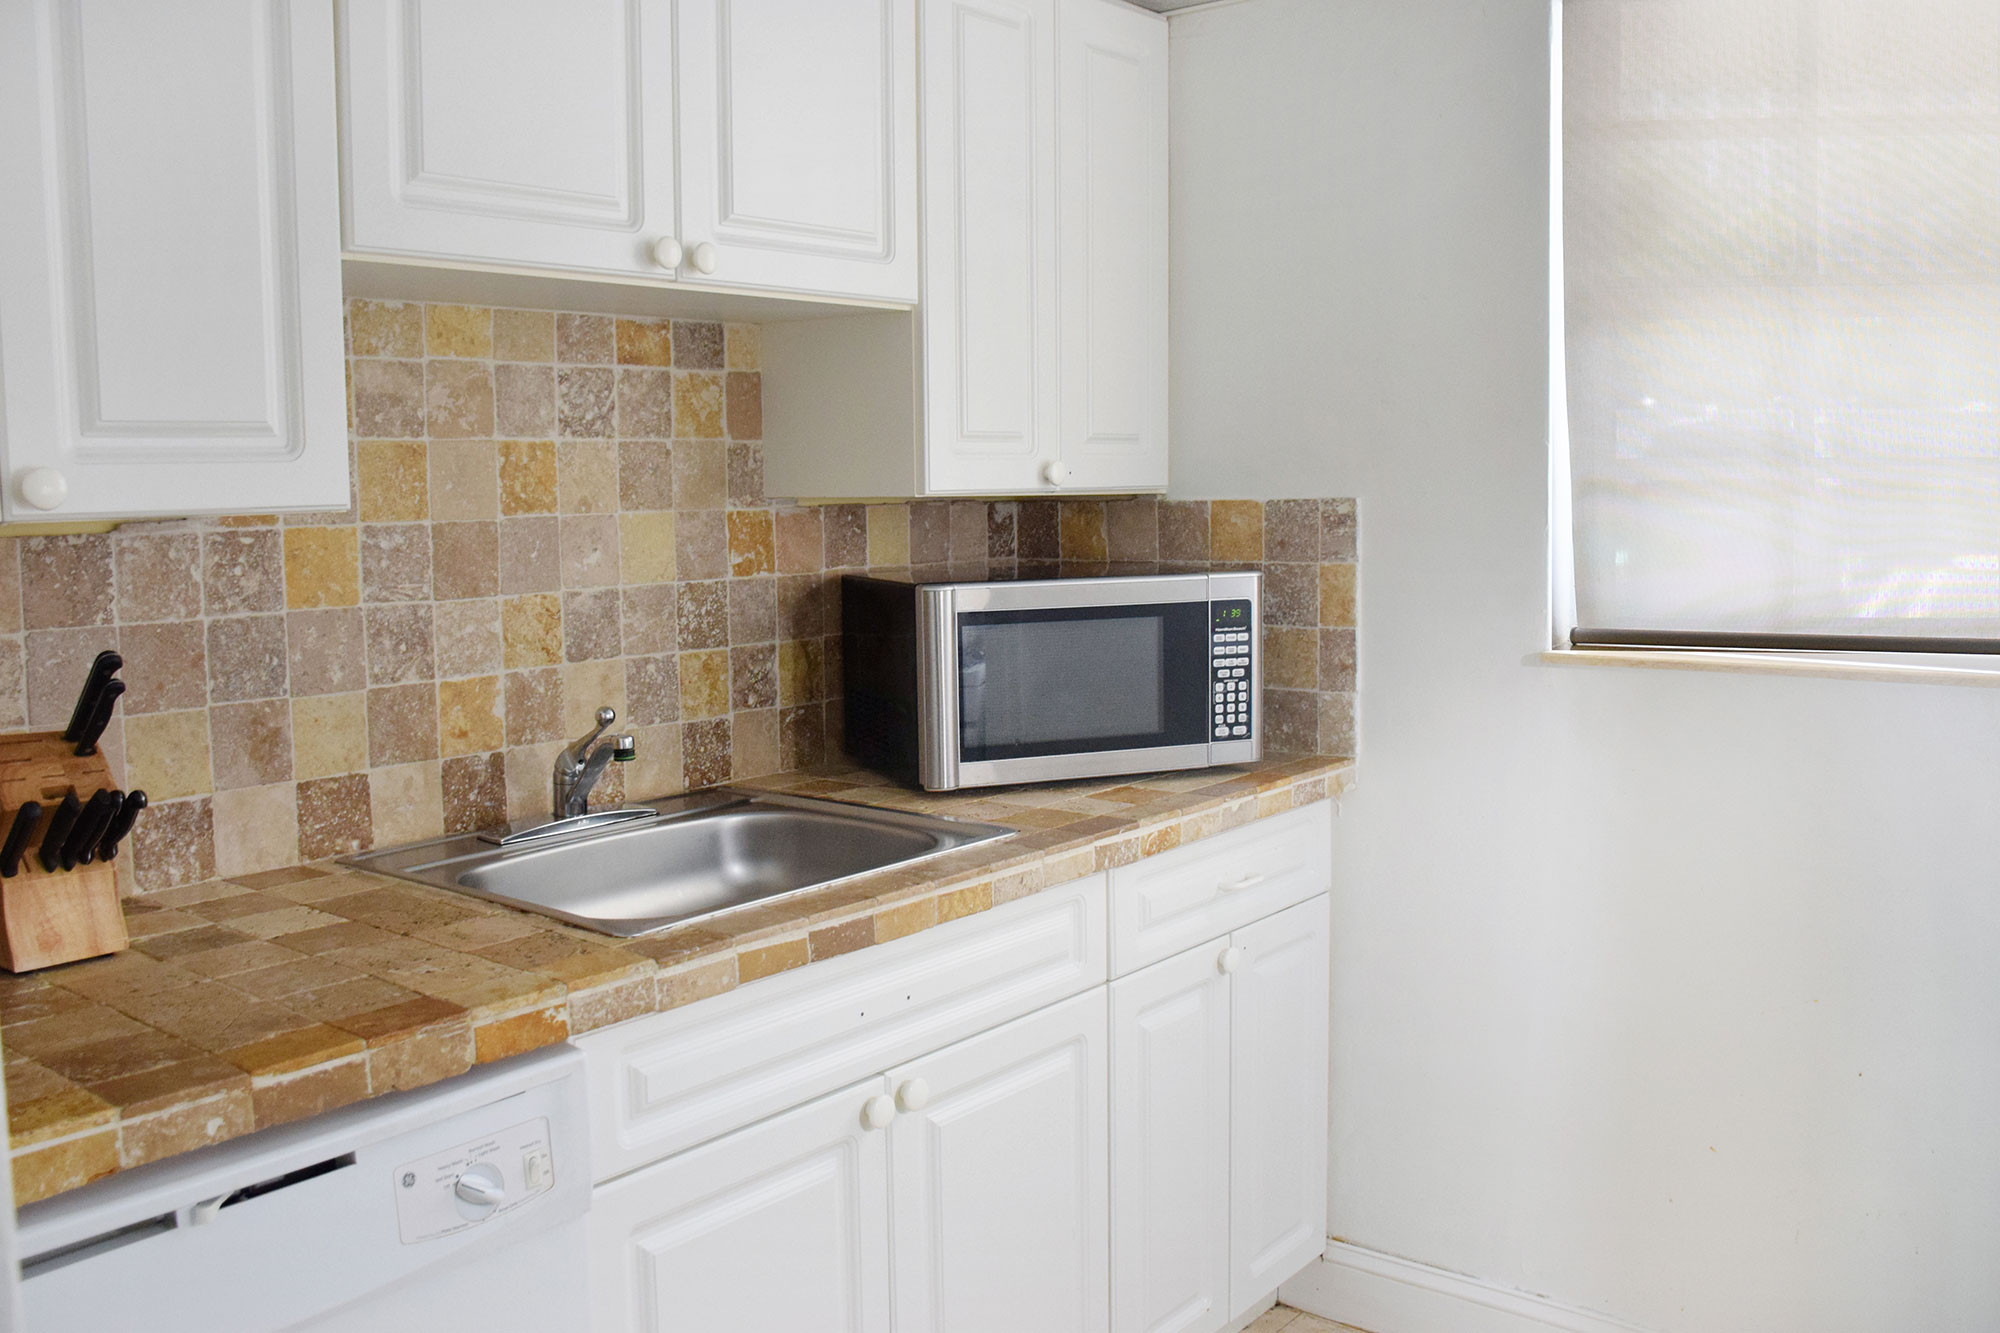 Kitchen of apartment at Coral Reef Key Biscayne